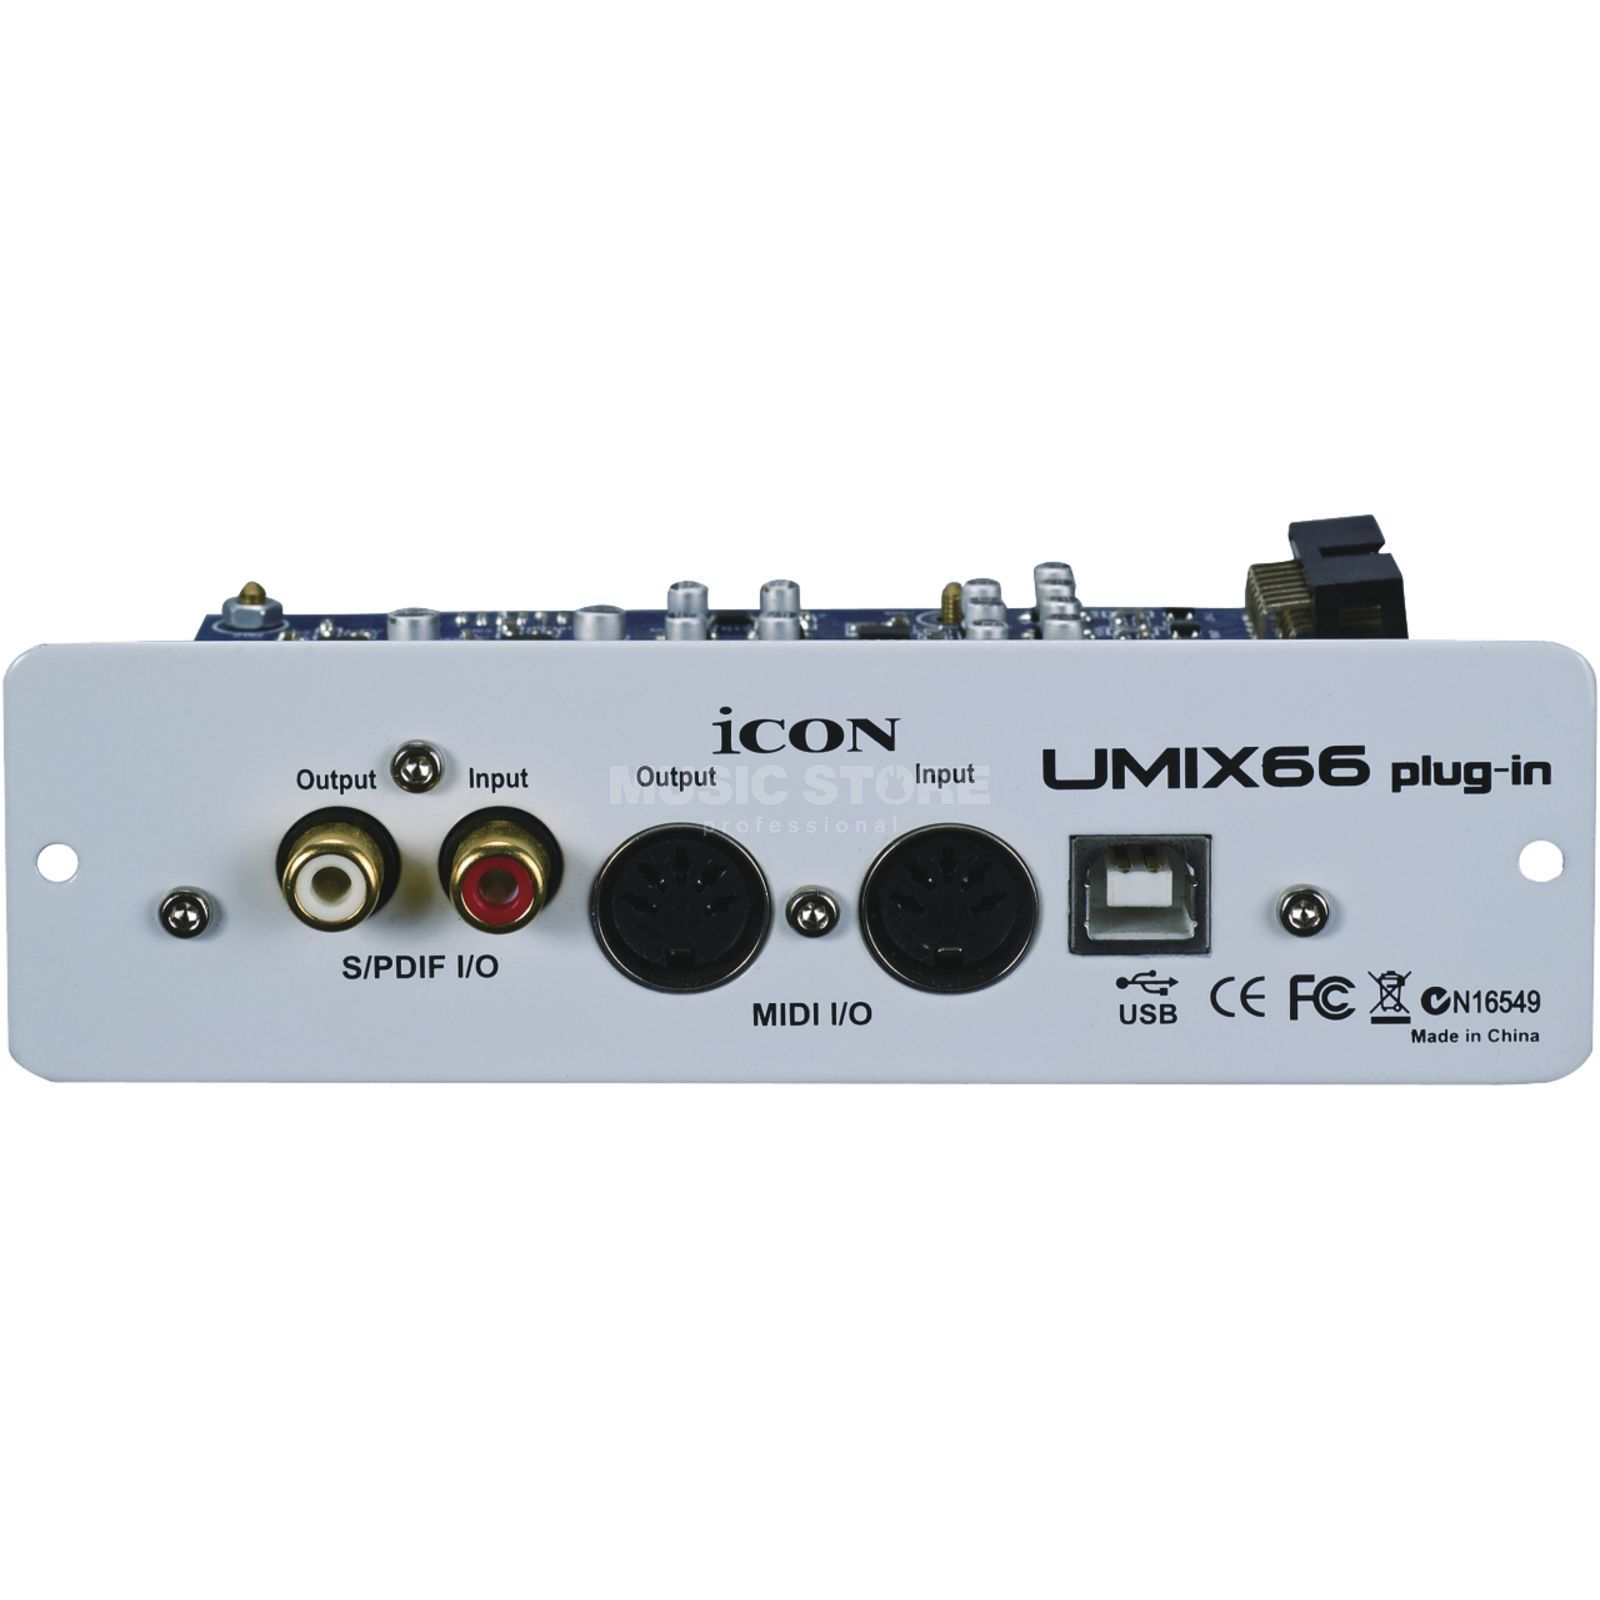 iCON Umix66 USB Expansion Card 6In/6Out + MIDI für Umix Mixer Image du produit